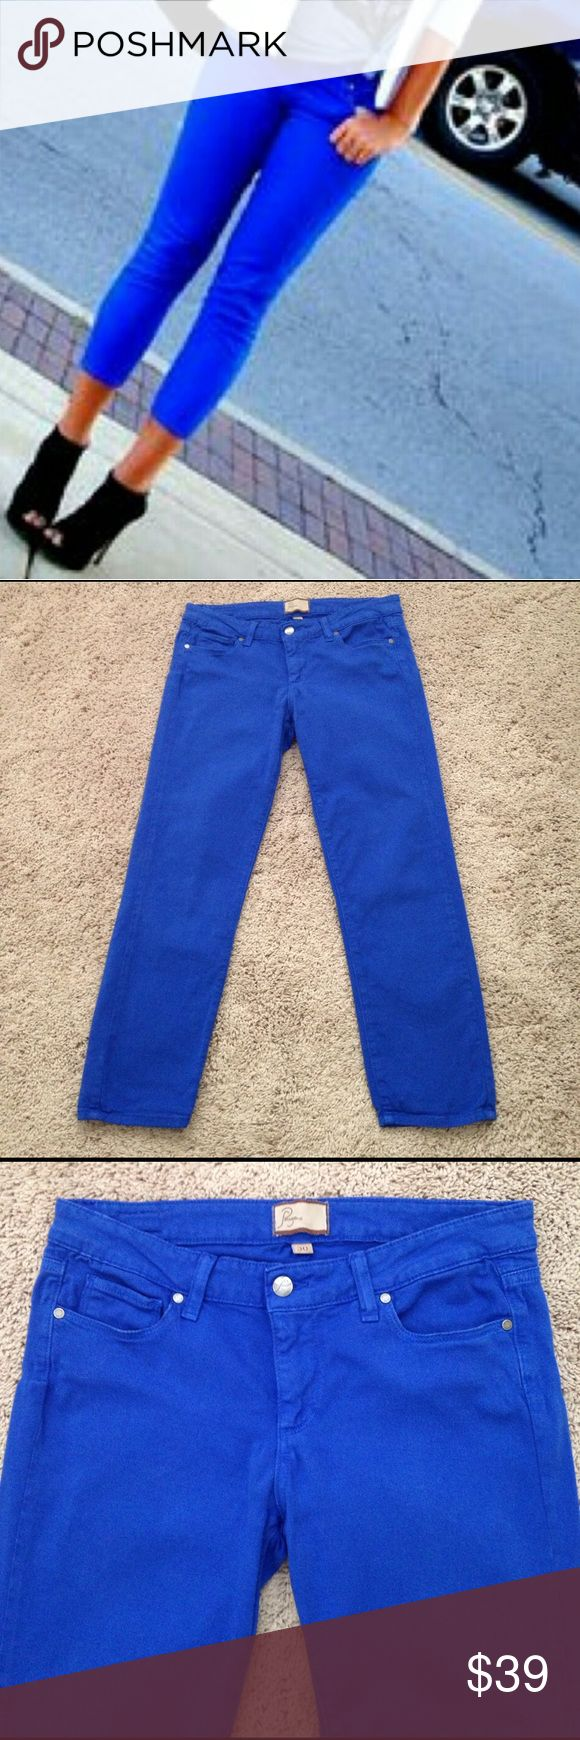 """Paige Jeans Paige Roxie Capri Jeans in a gorgeous bright blue color. These are super soft, 98% cotton, 2% spandex. Measurements are waist laying flat 15"""" across, Rise 9"""", Inseam 24 1/2"""" inches. Good condition!!!💙 Paige Jeans Jeans Ankle & Cropped"""